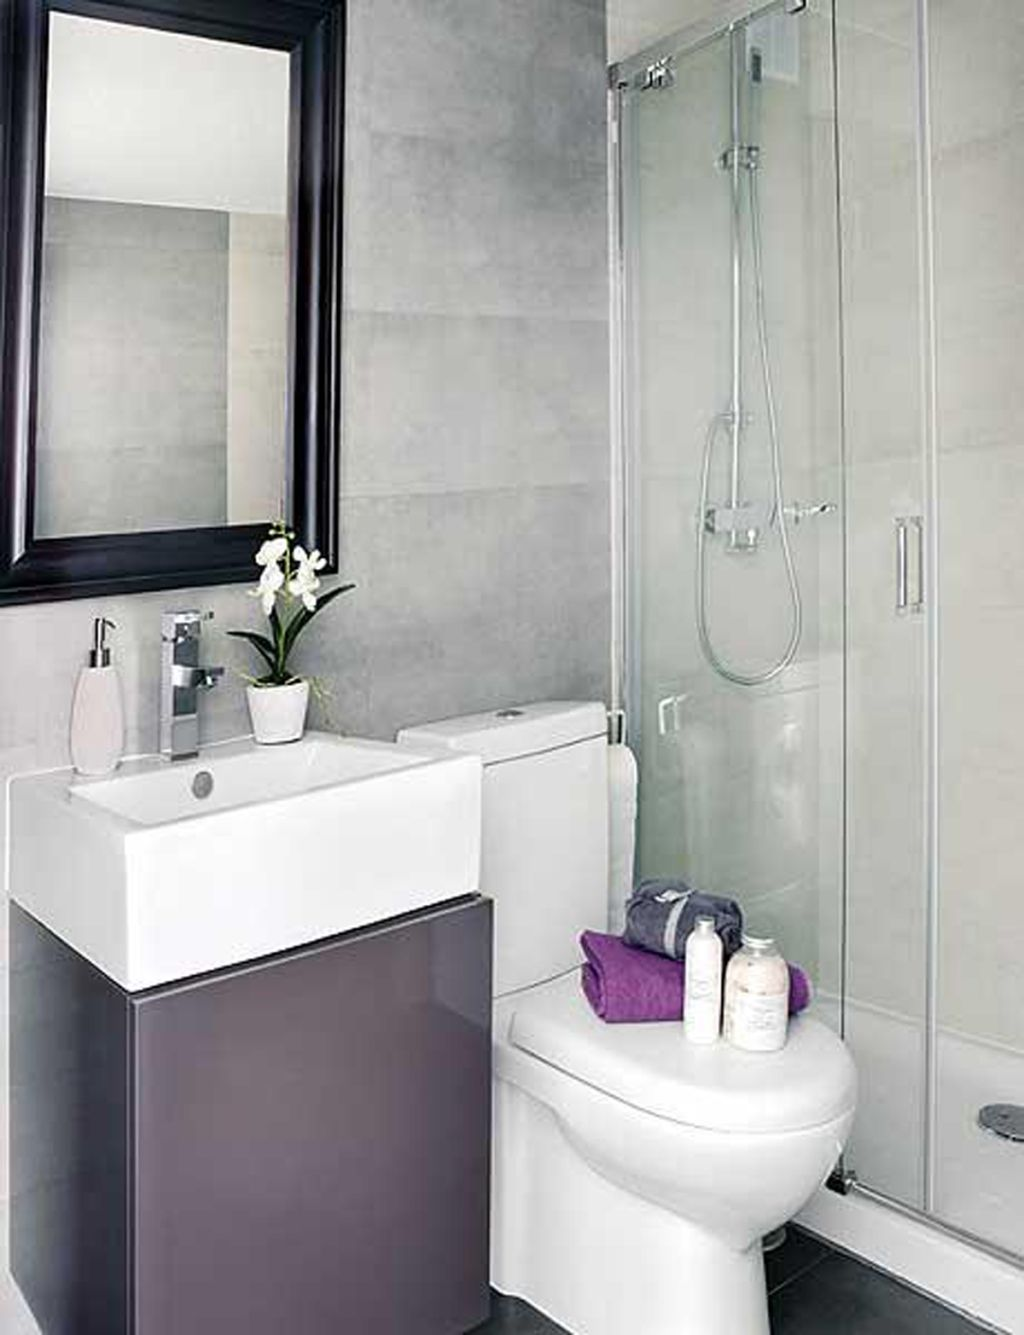 Pin by houzz club on Home Design | Pinterest | Small bathroom ...